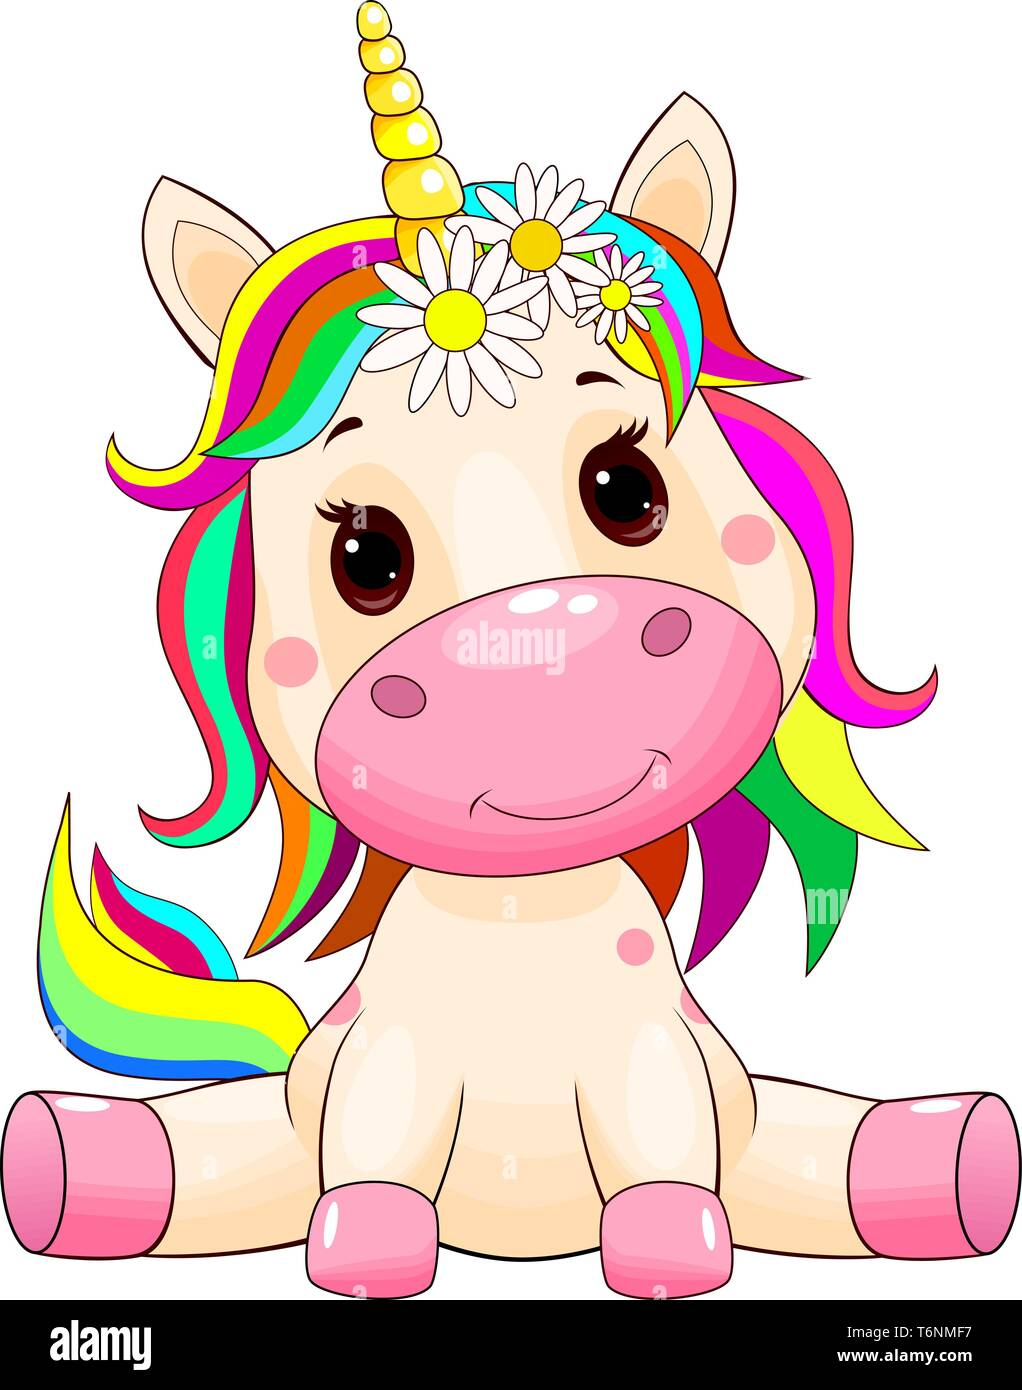 Little unicorn with a multi-colored mane and tail on white. - Stock Vector